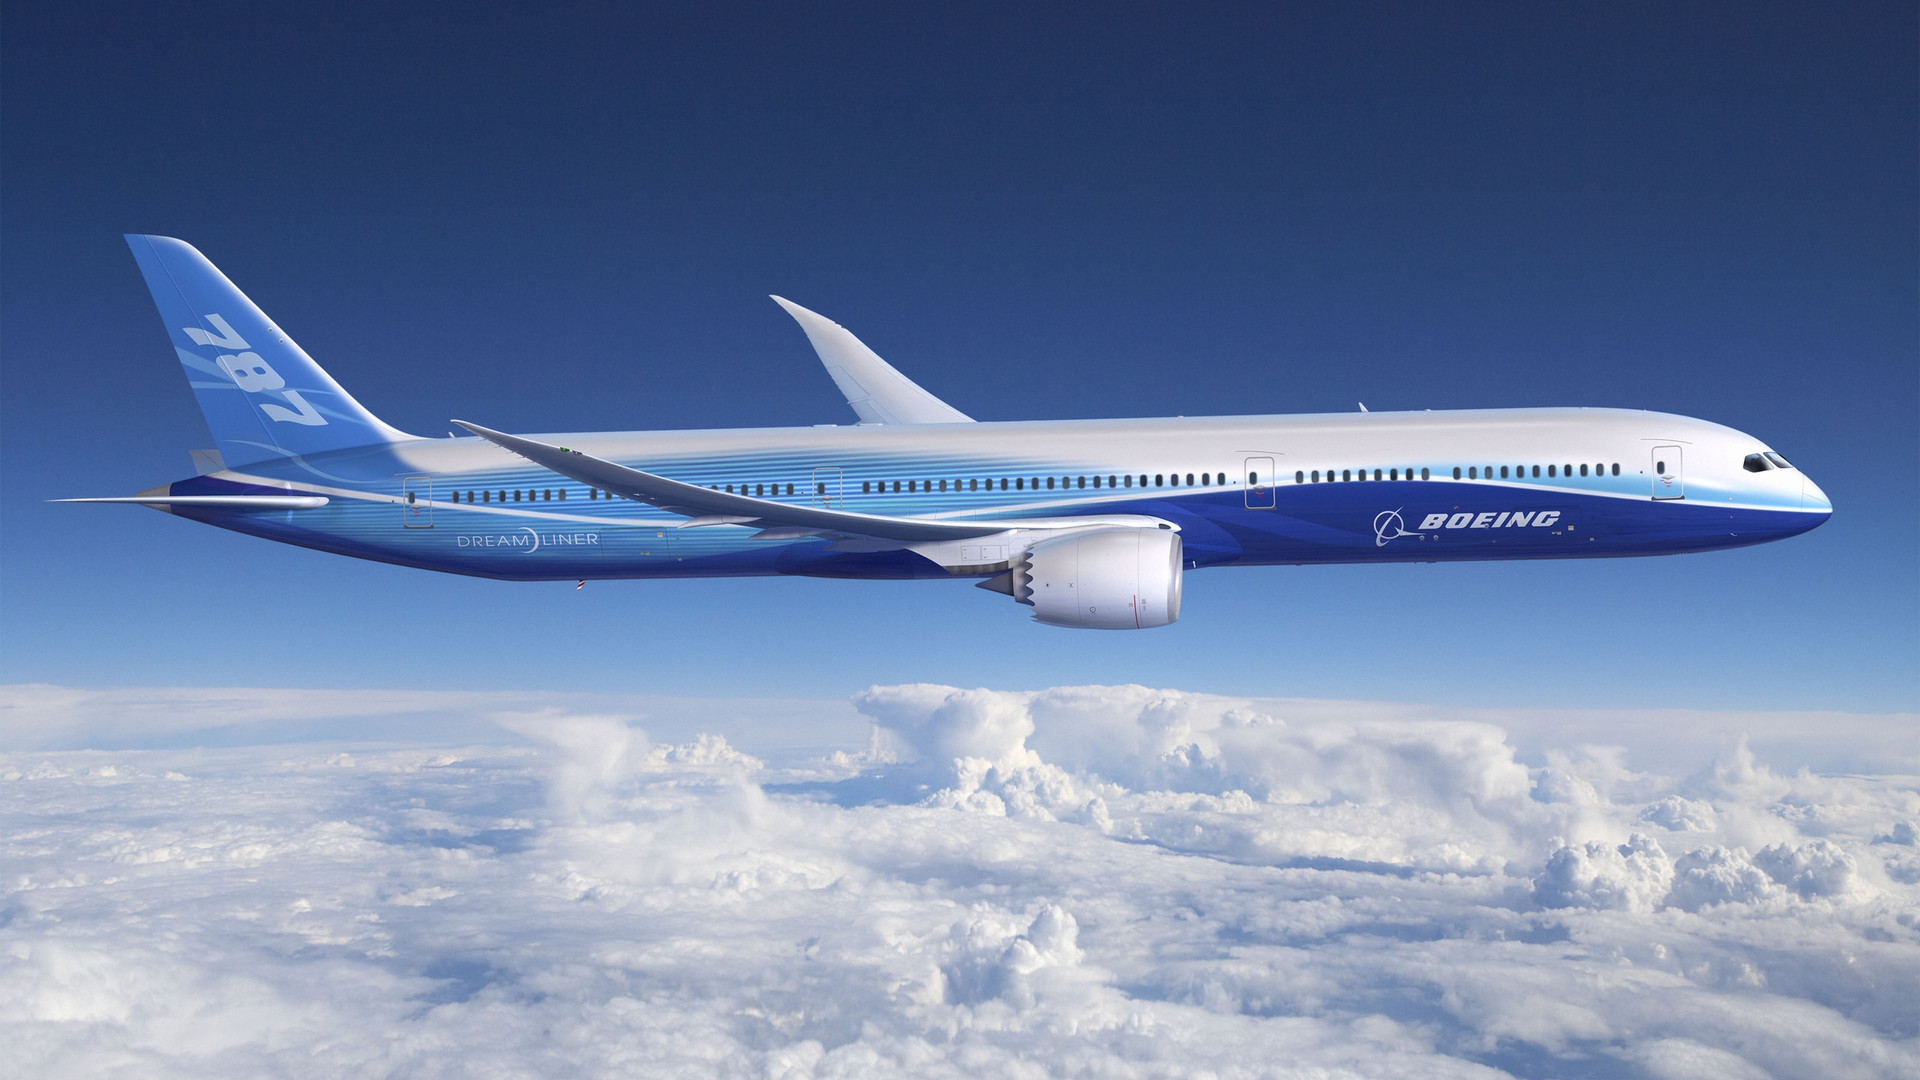 aviation-787-dreamliner-Boeing-sky-airpl